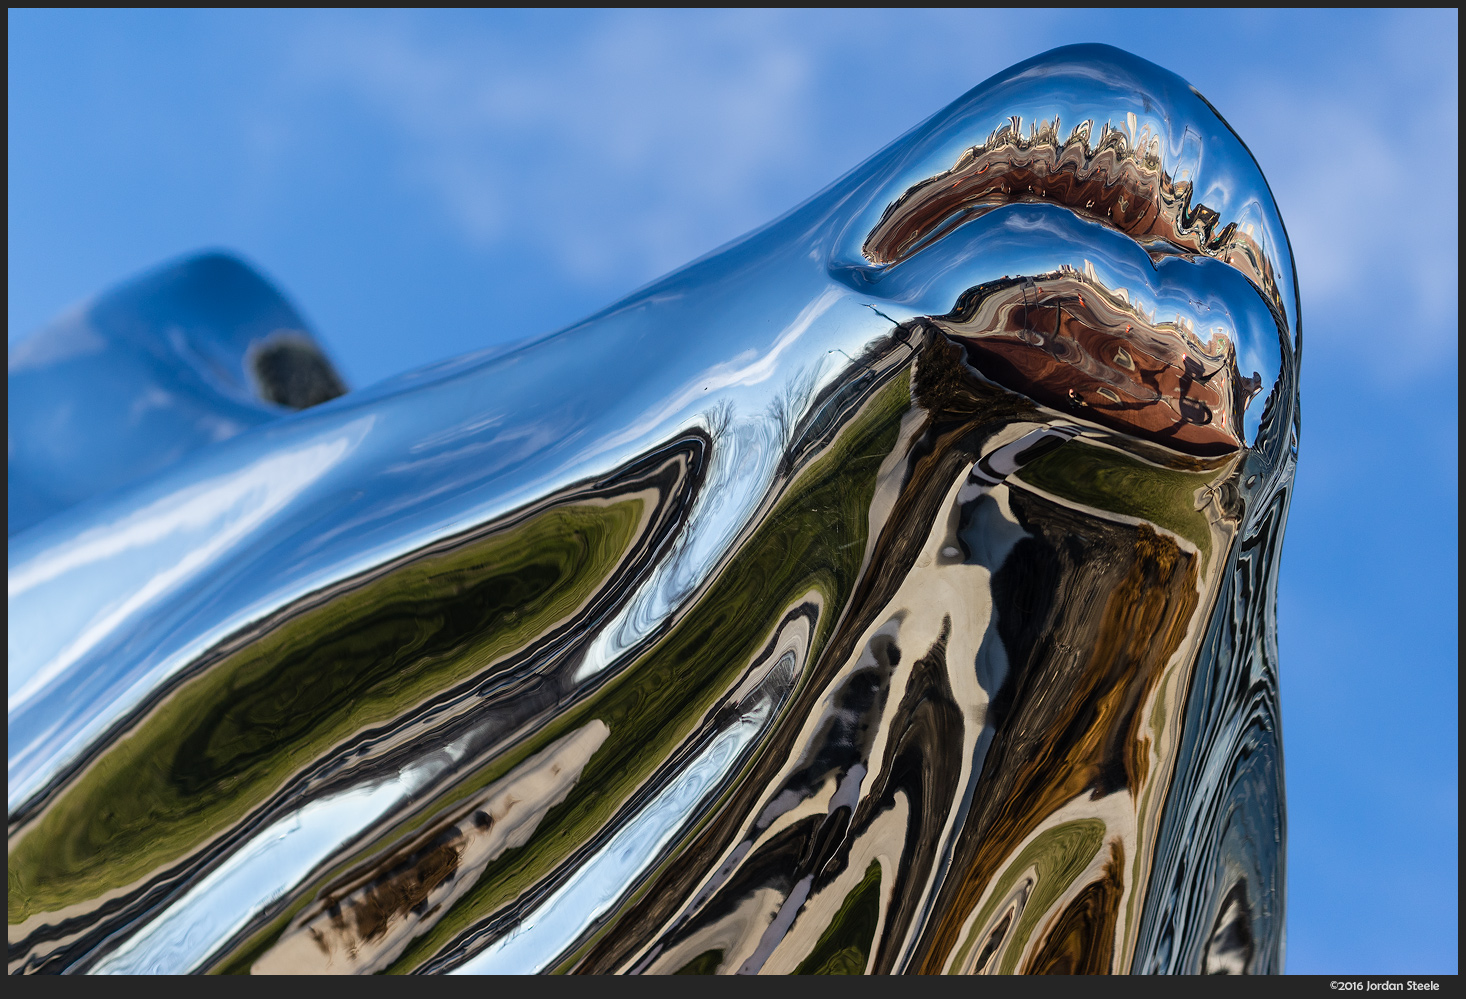 Flowing Kiss - Sony A7 II with Sony FE 70-200mm f/4 G OSS @